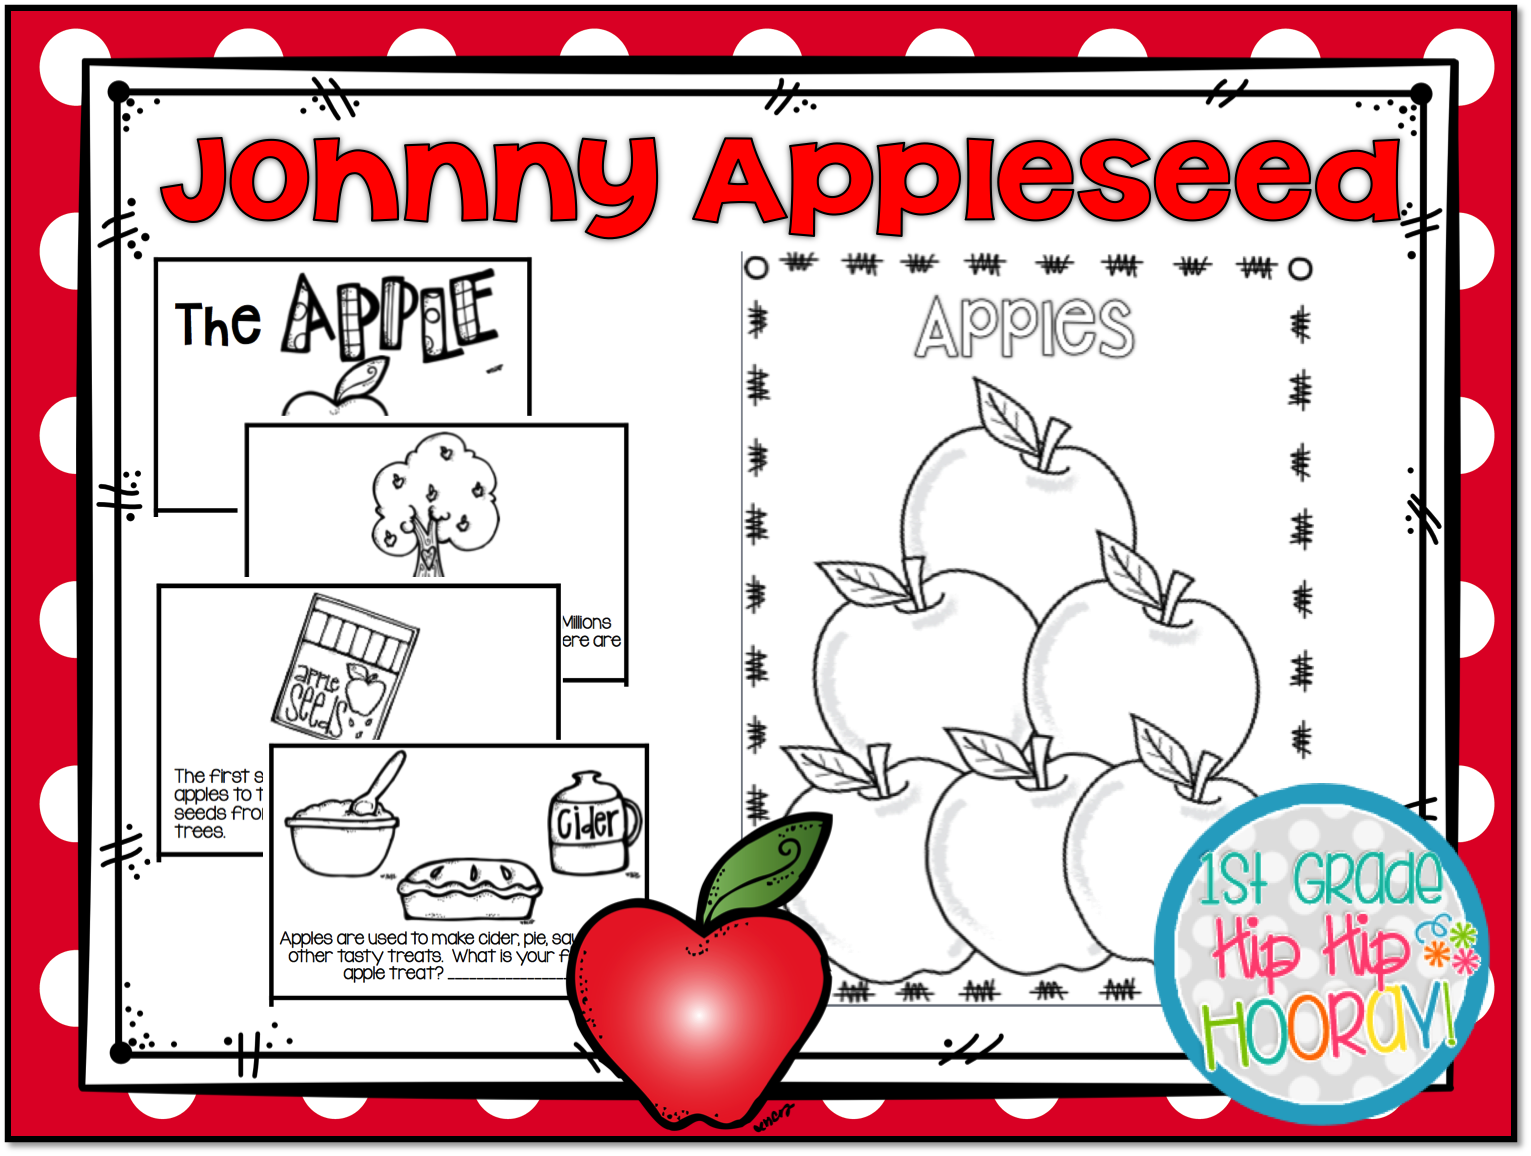 1st Grade Hip Hip Hooray Fall Is Apples And Johnny